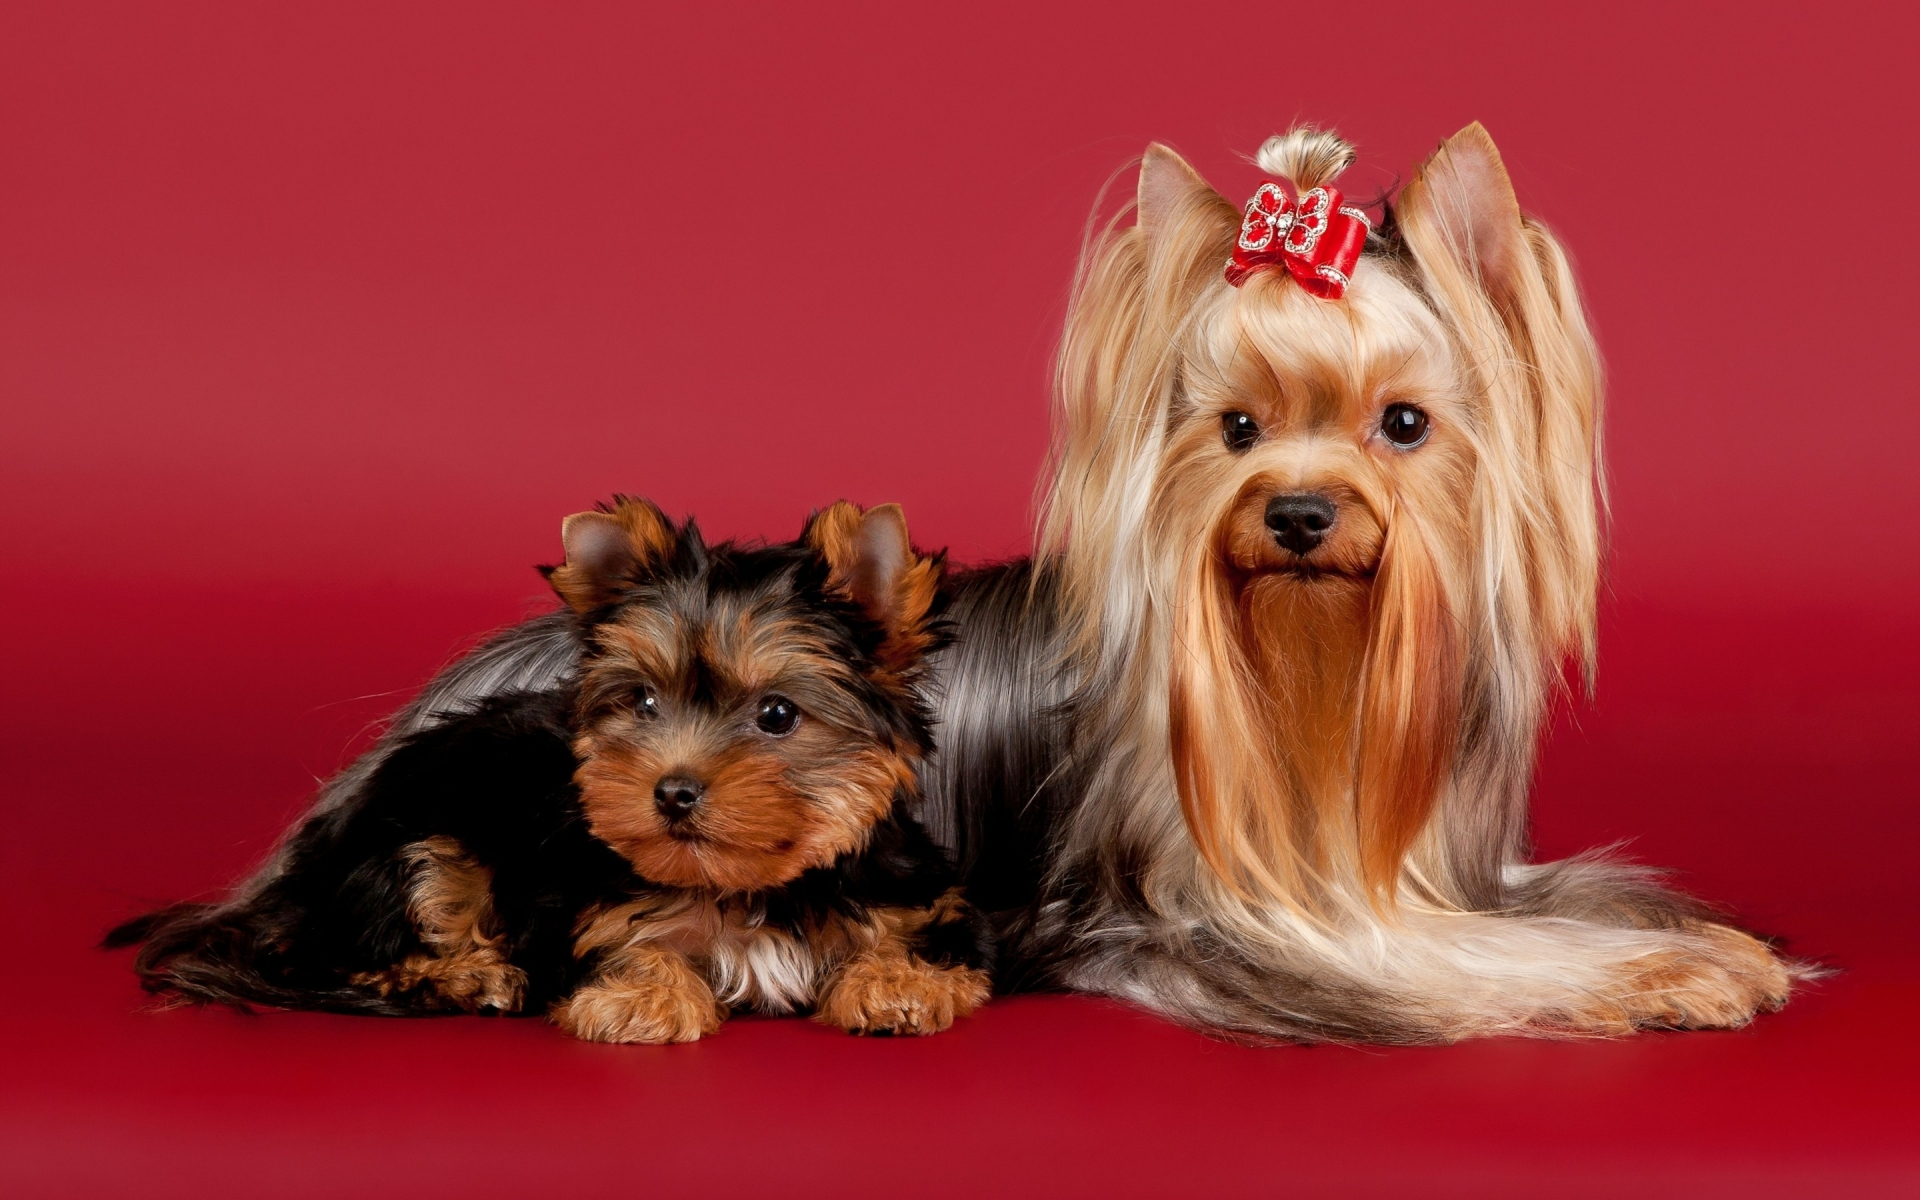 2 Cute Dogs for 1920 x 1200 widescreen resolution